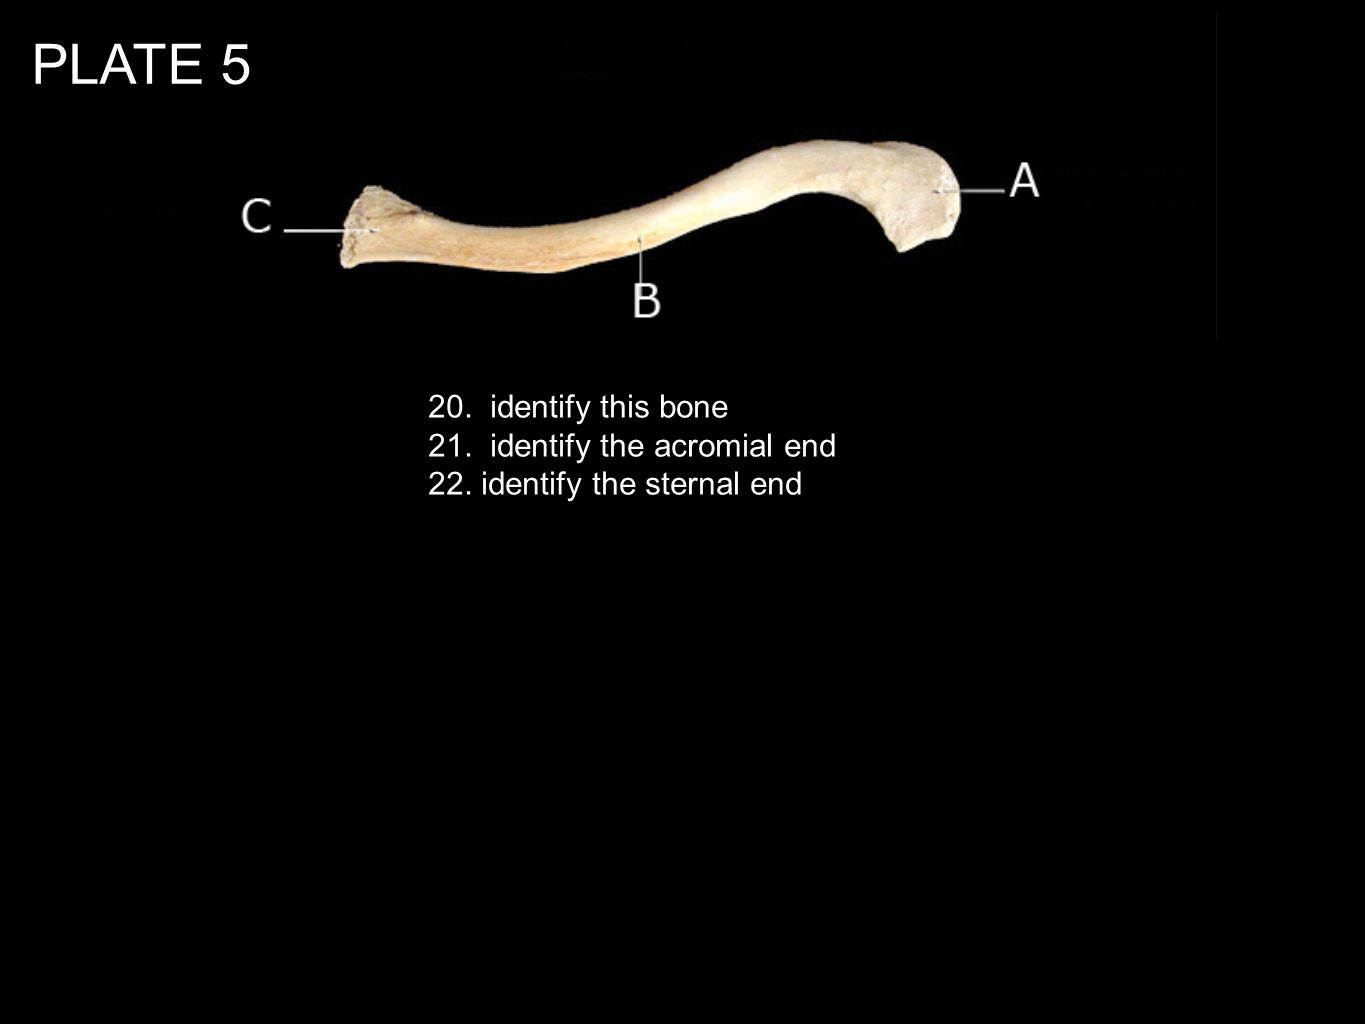 PLATE 5 20. identify this bone 21. identify the acromial end